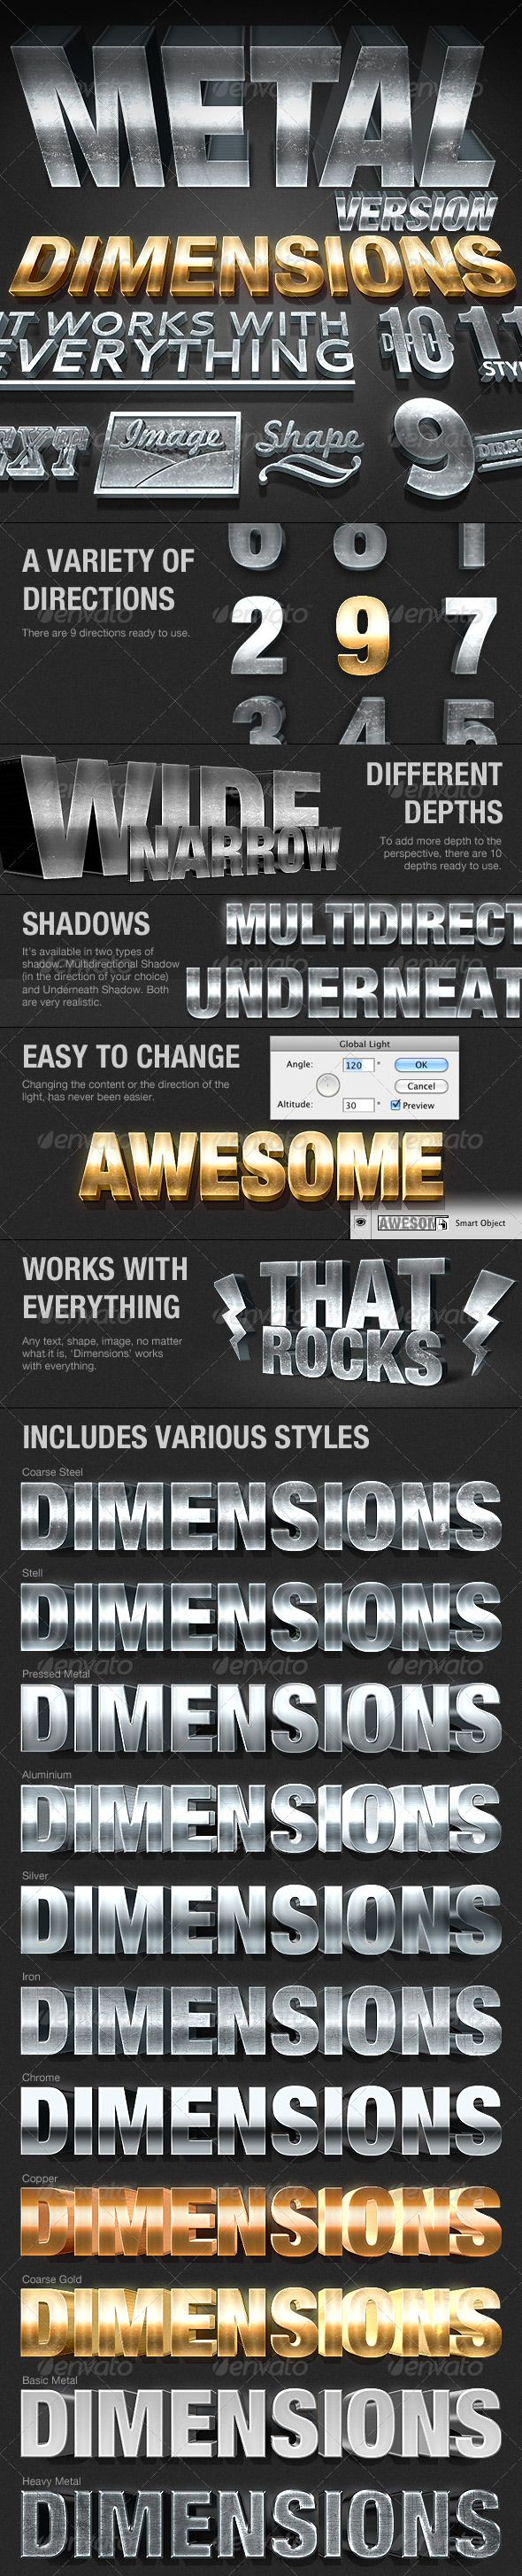 Diions Metal Version - 3D Generator Action | Pinterest ... on text shape generator, word map generator, 3d shape generator, typography design inspiration, eye shape generator, letter shape generator, typography alphabet,